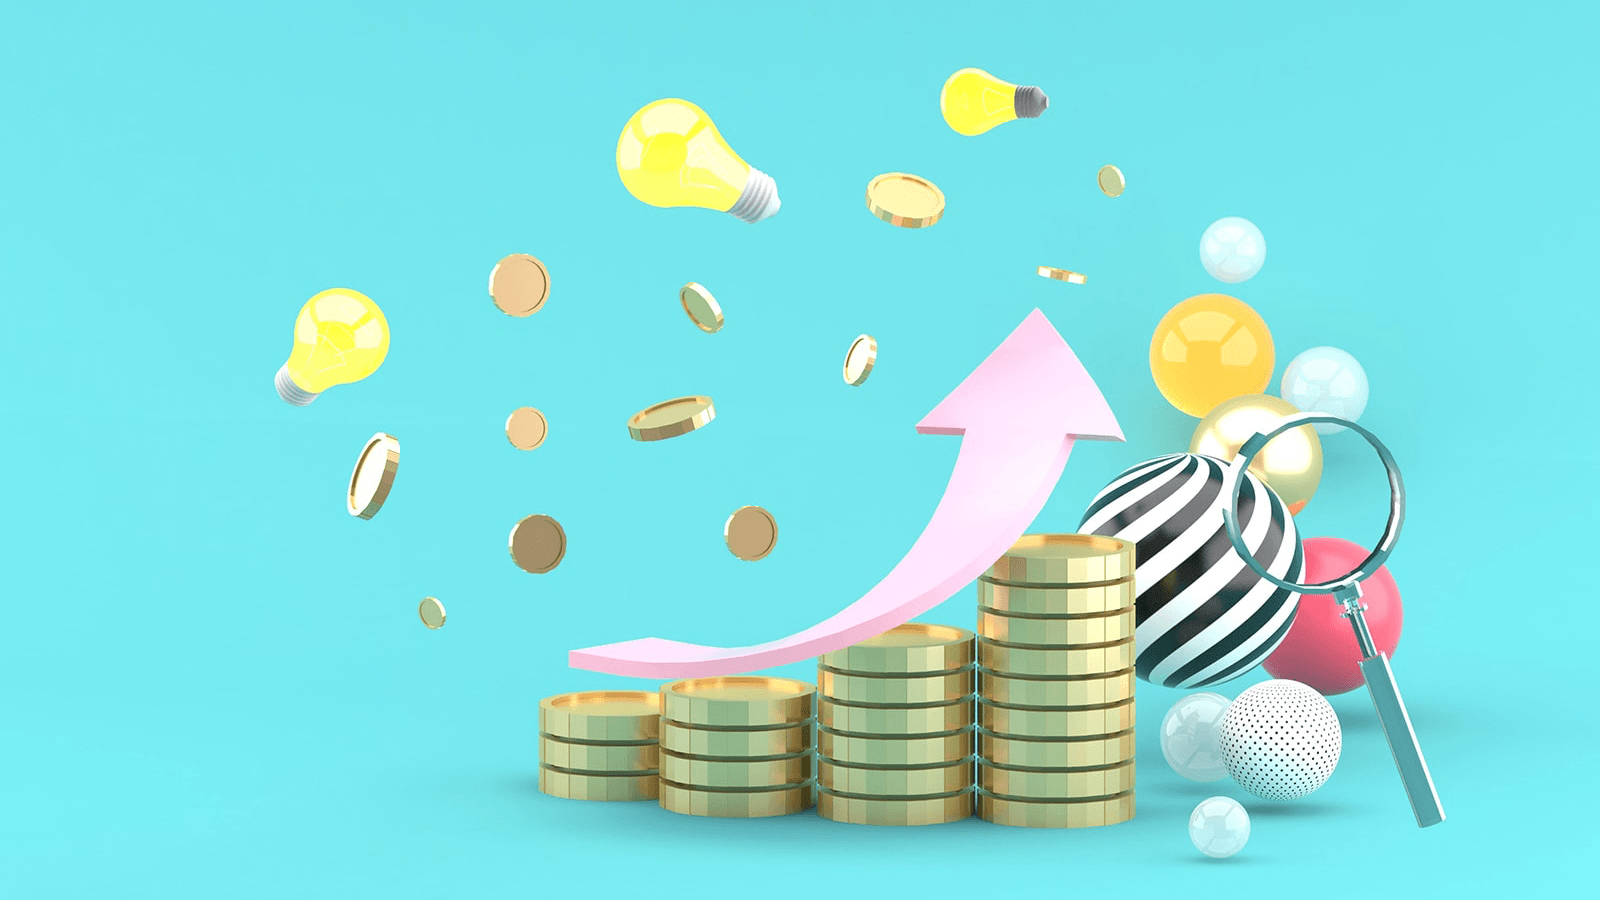 Illustration with 3d render of arrow